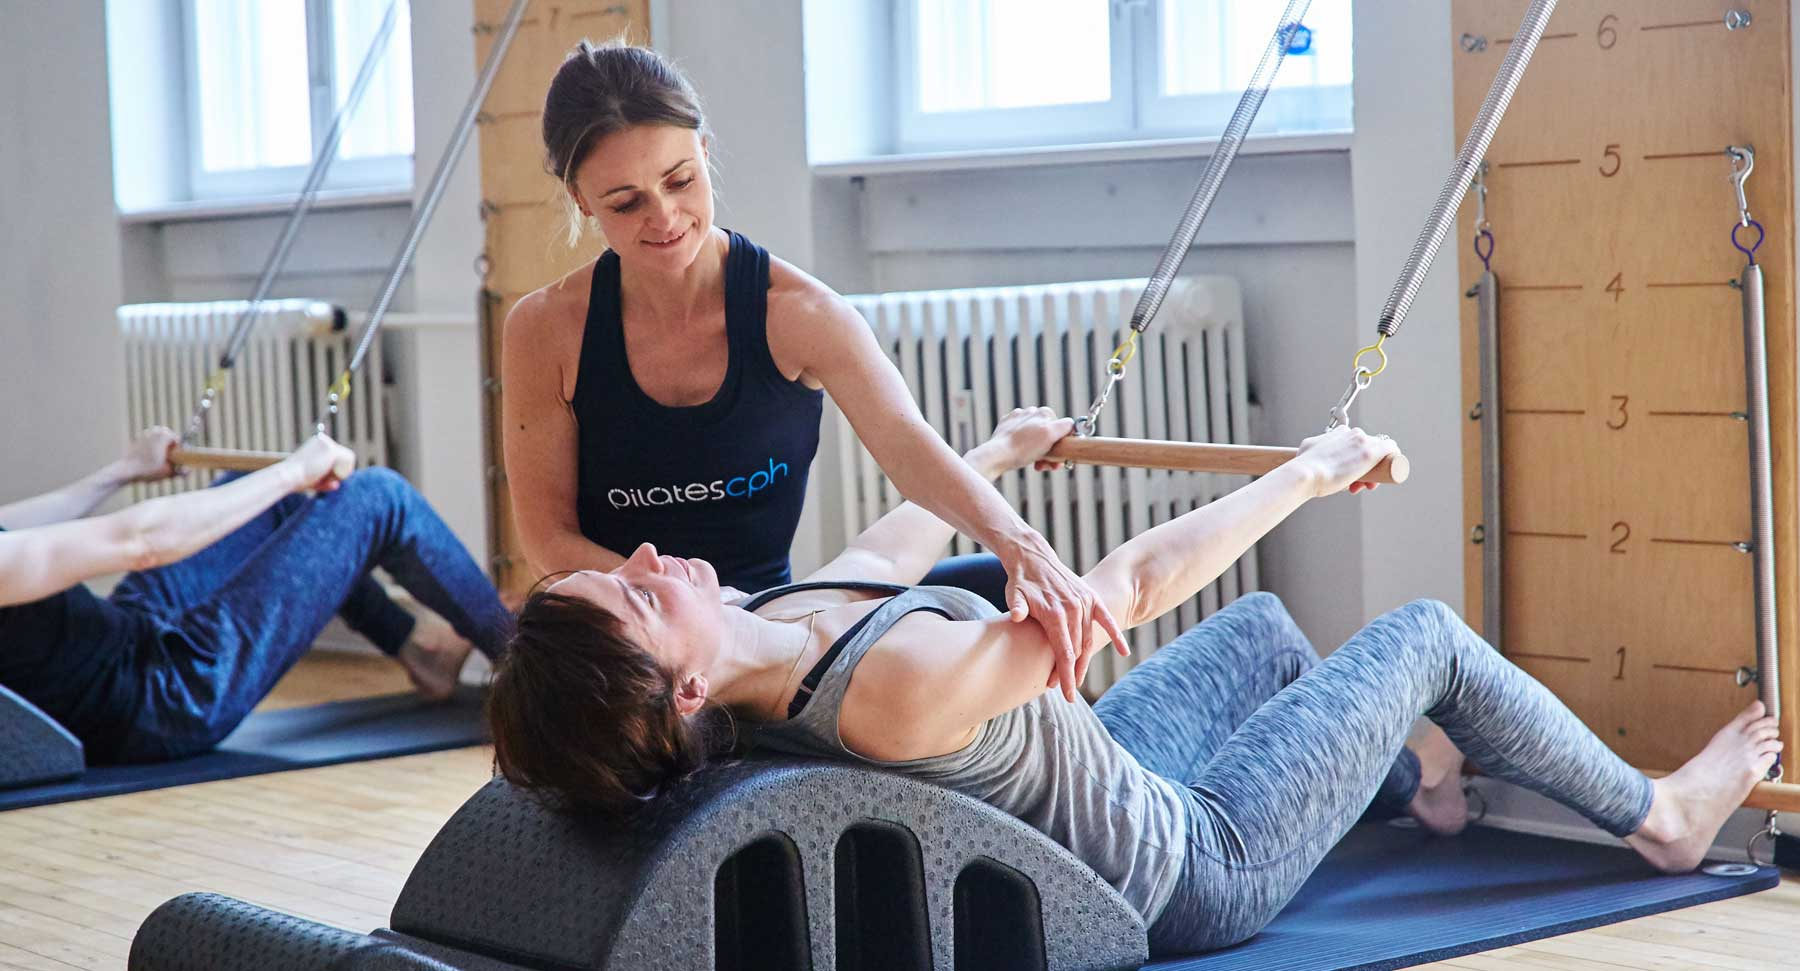 Classes with classic tower- and reformer pilates exercises